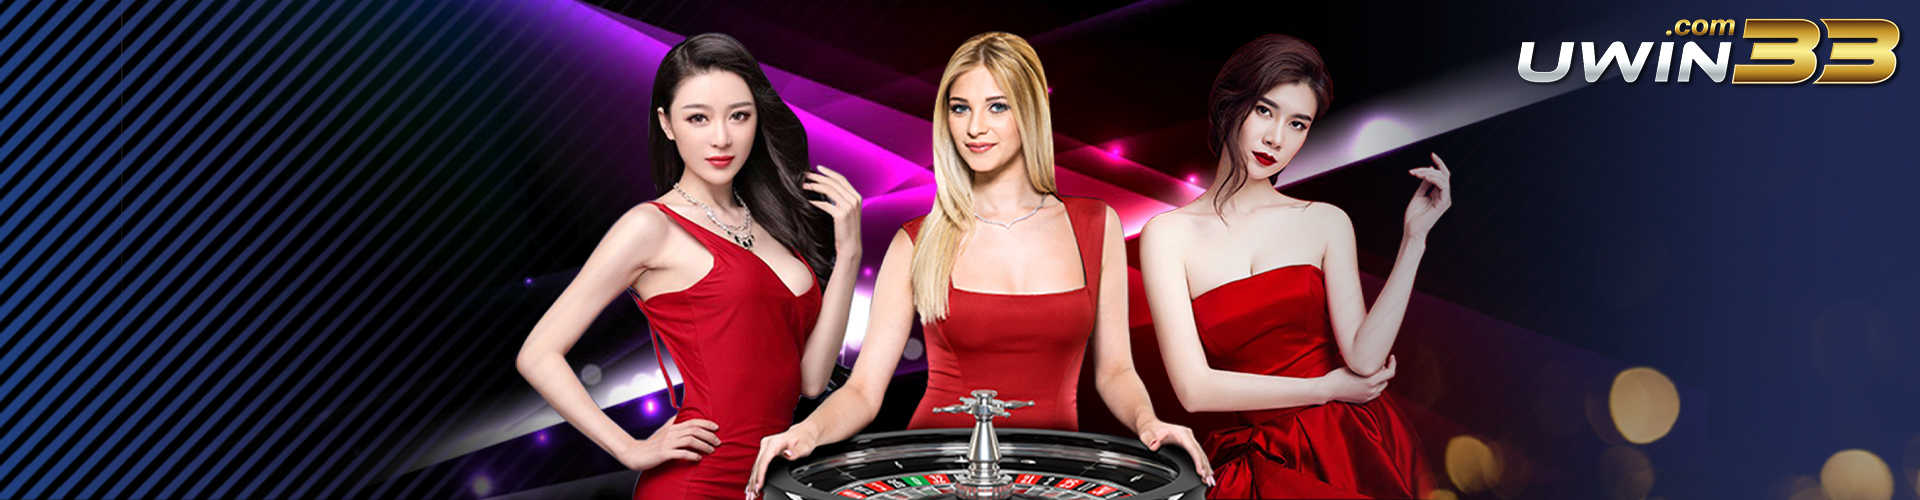 Trusted Online Casino at UWin33